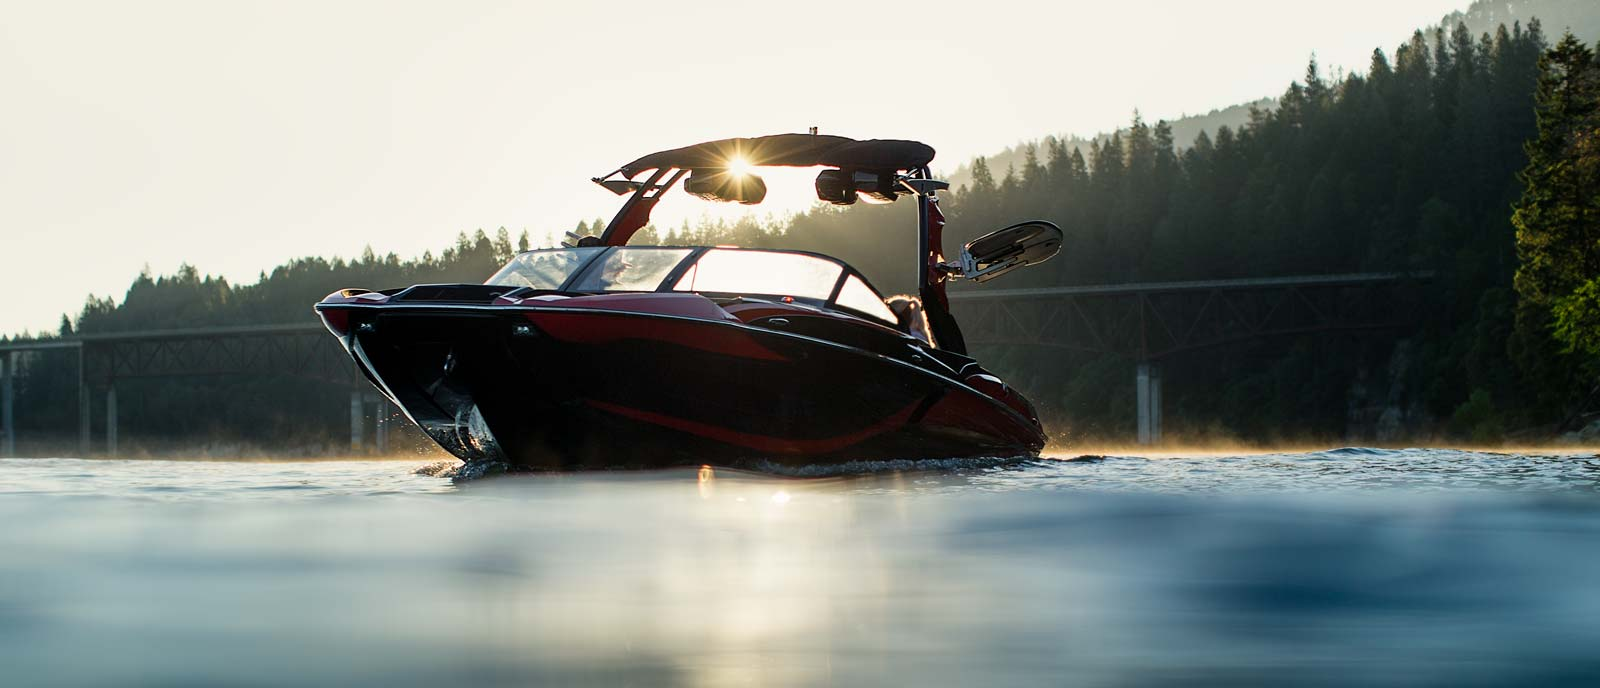 Centurions New Fi23 Released - Roswell Marine